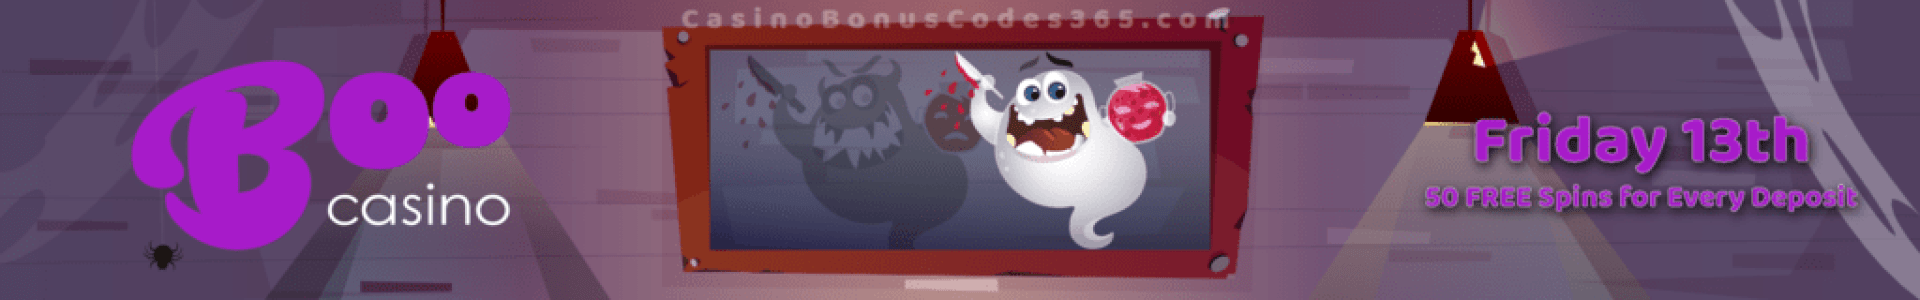 Boo Casino Friday the 13th 50 FREE Spins